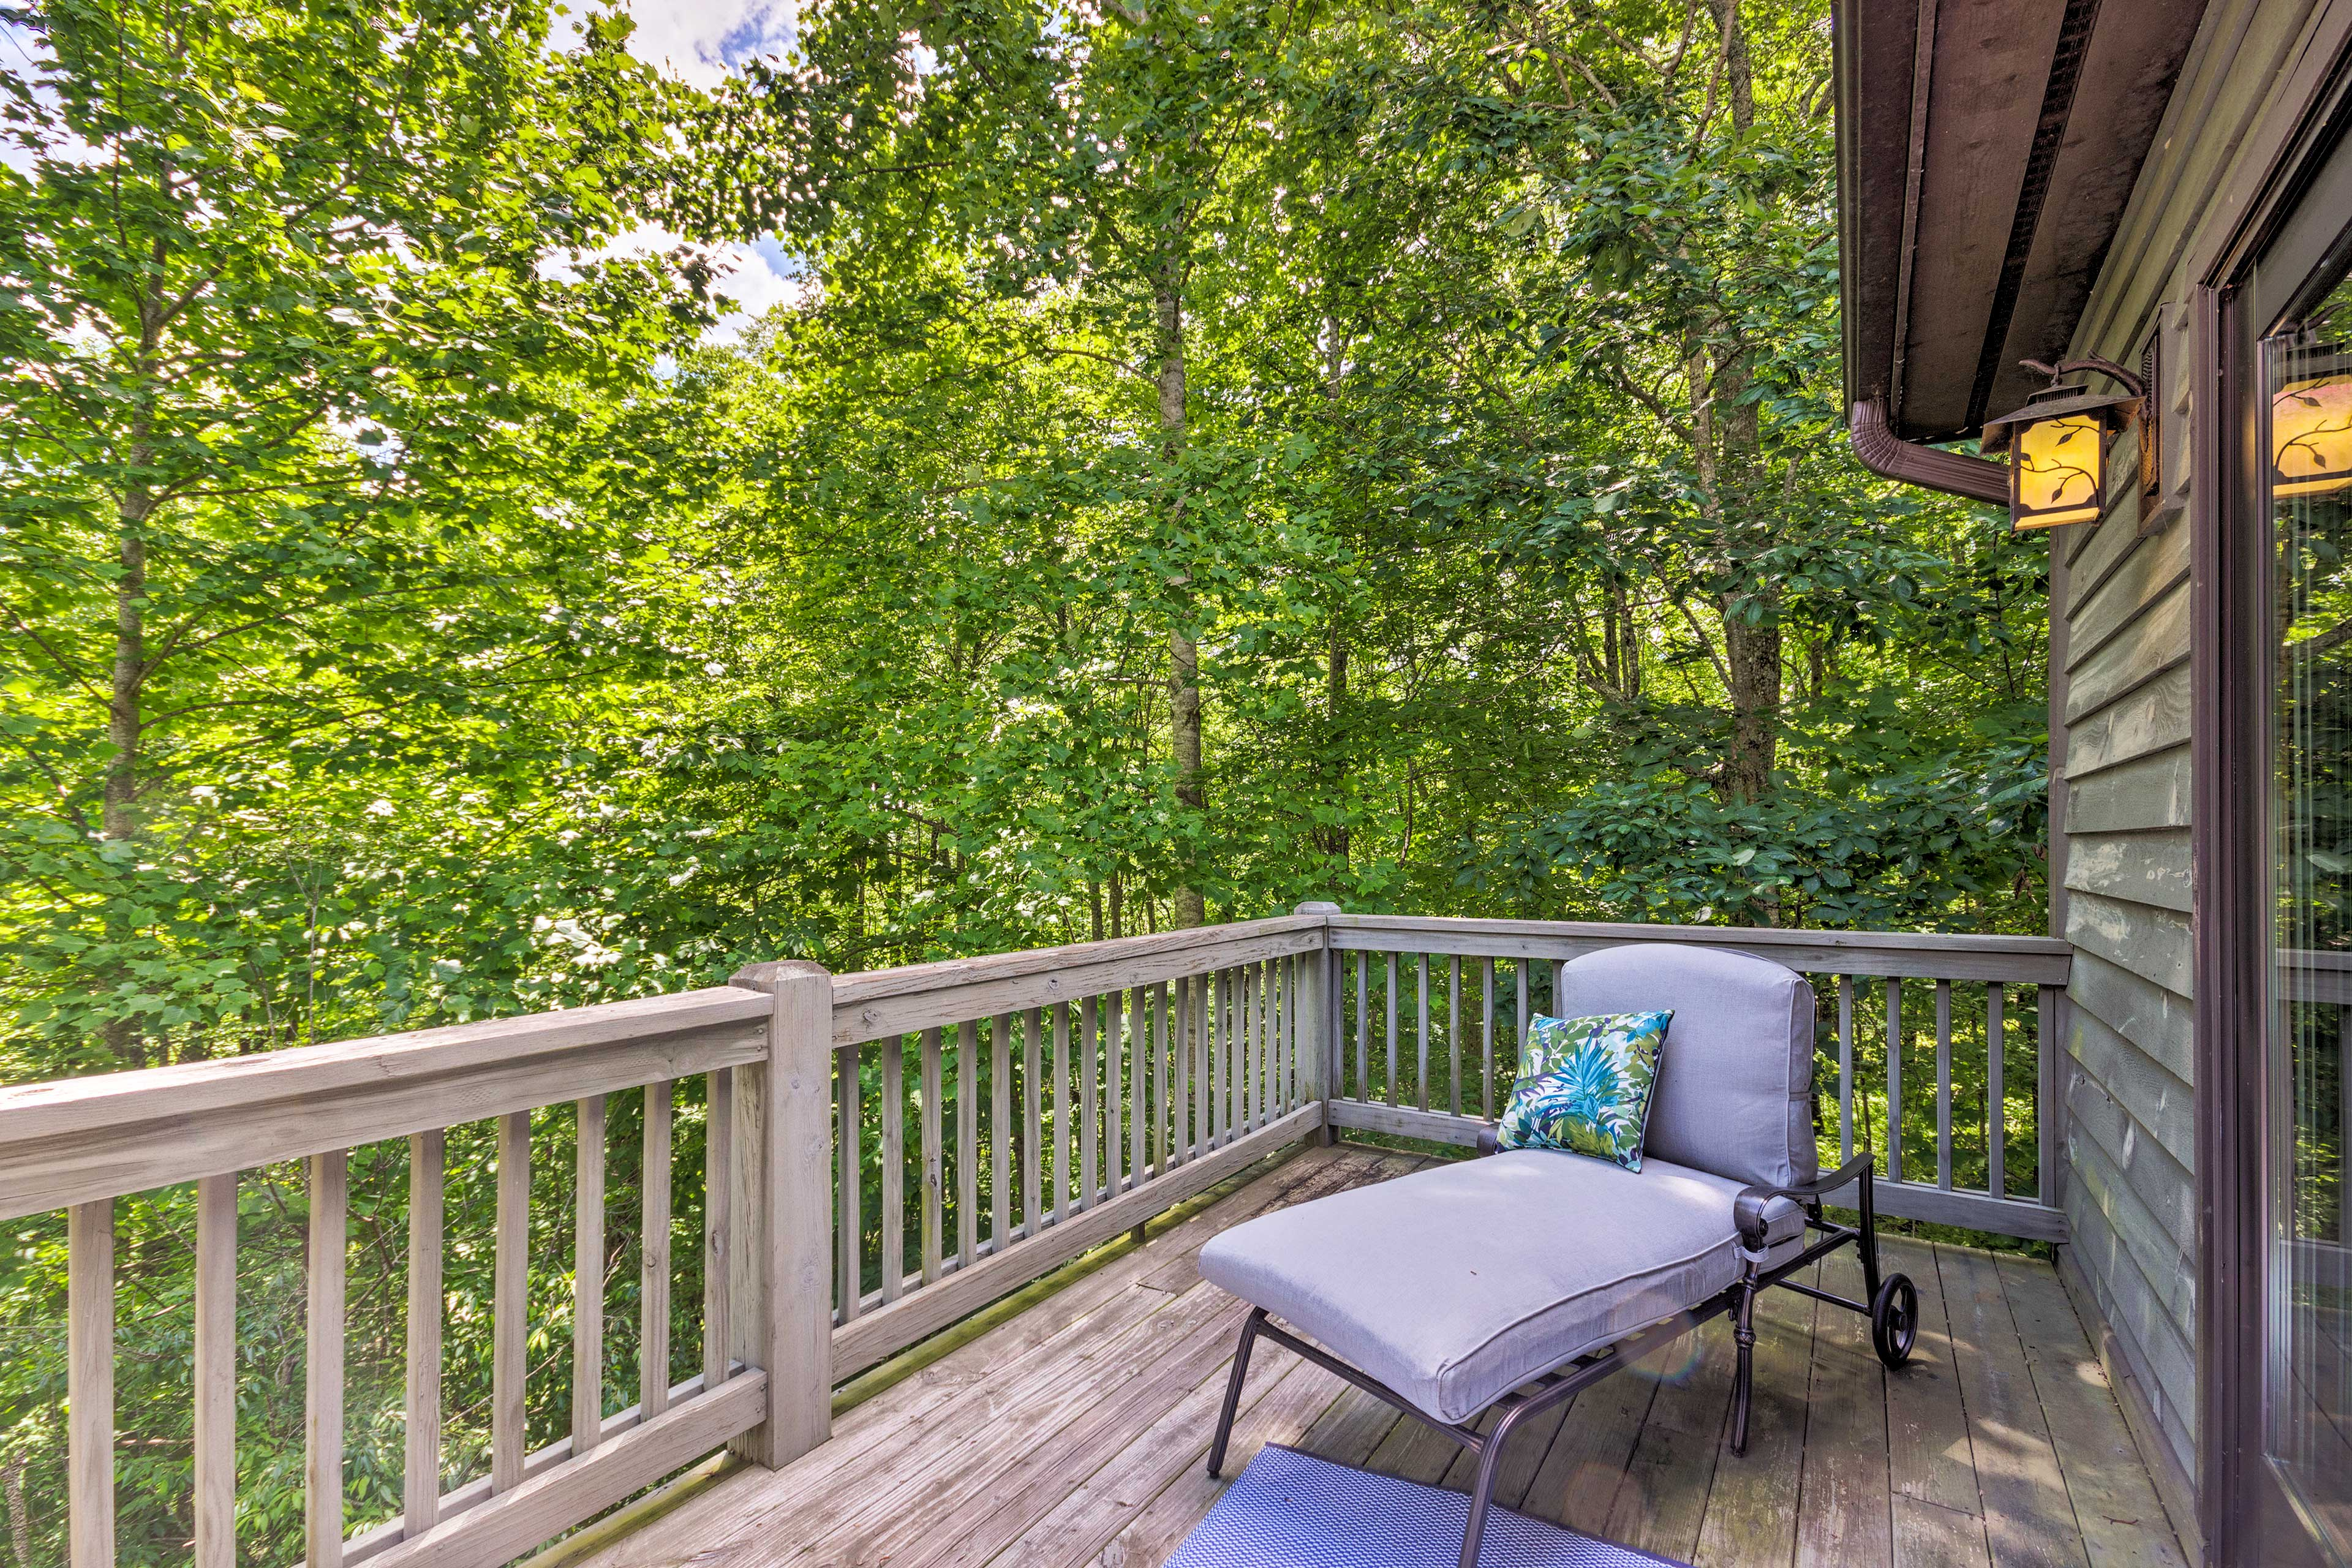 Soak up the afternoon sun on the master bedroom deck.